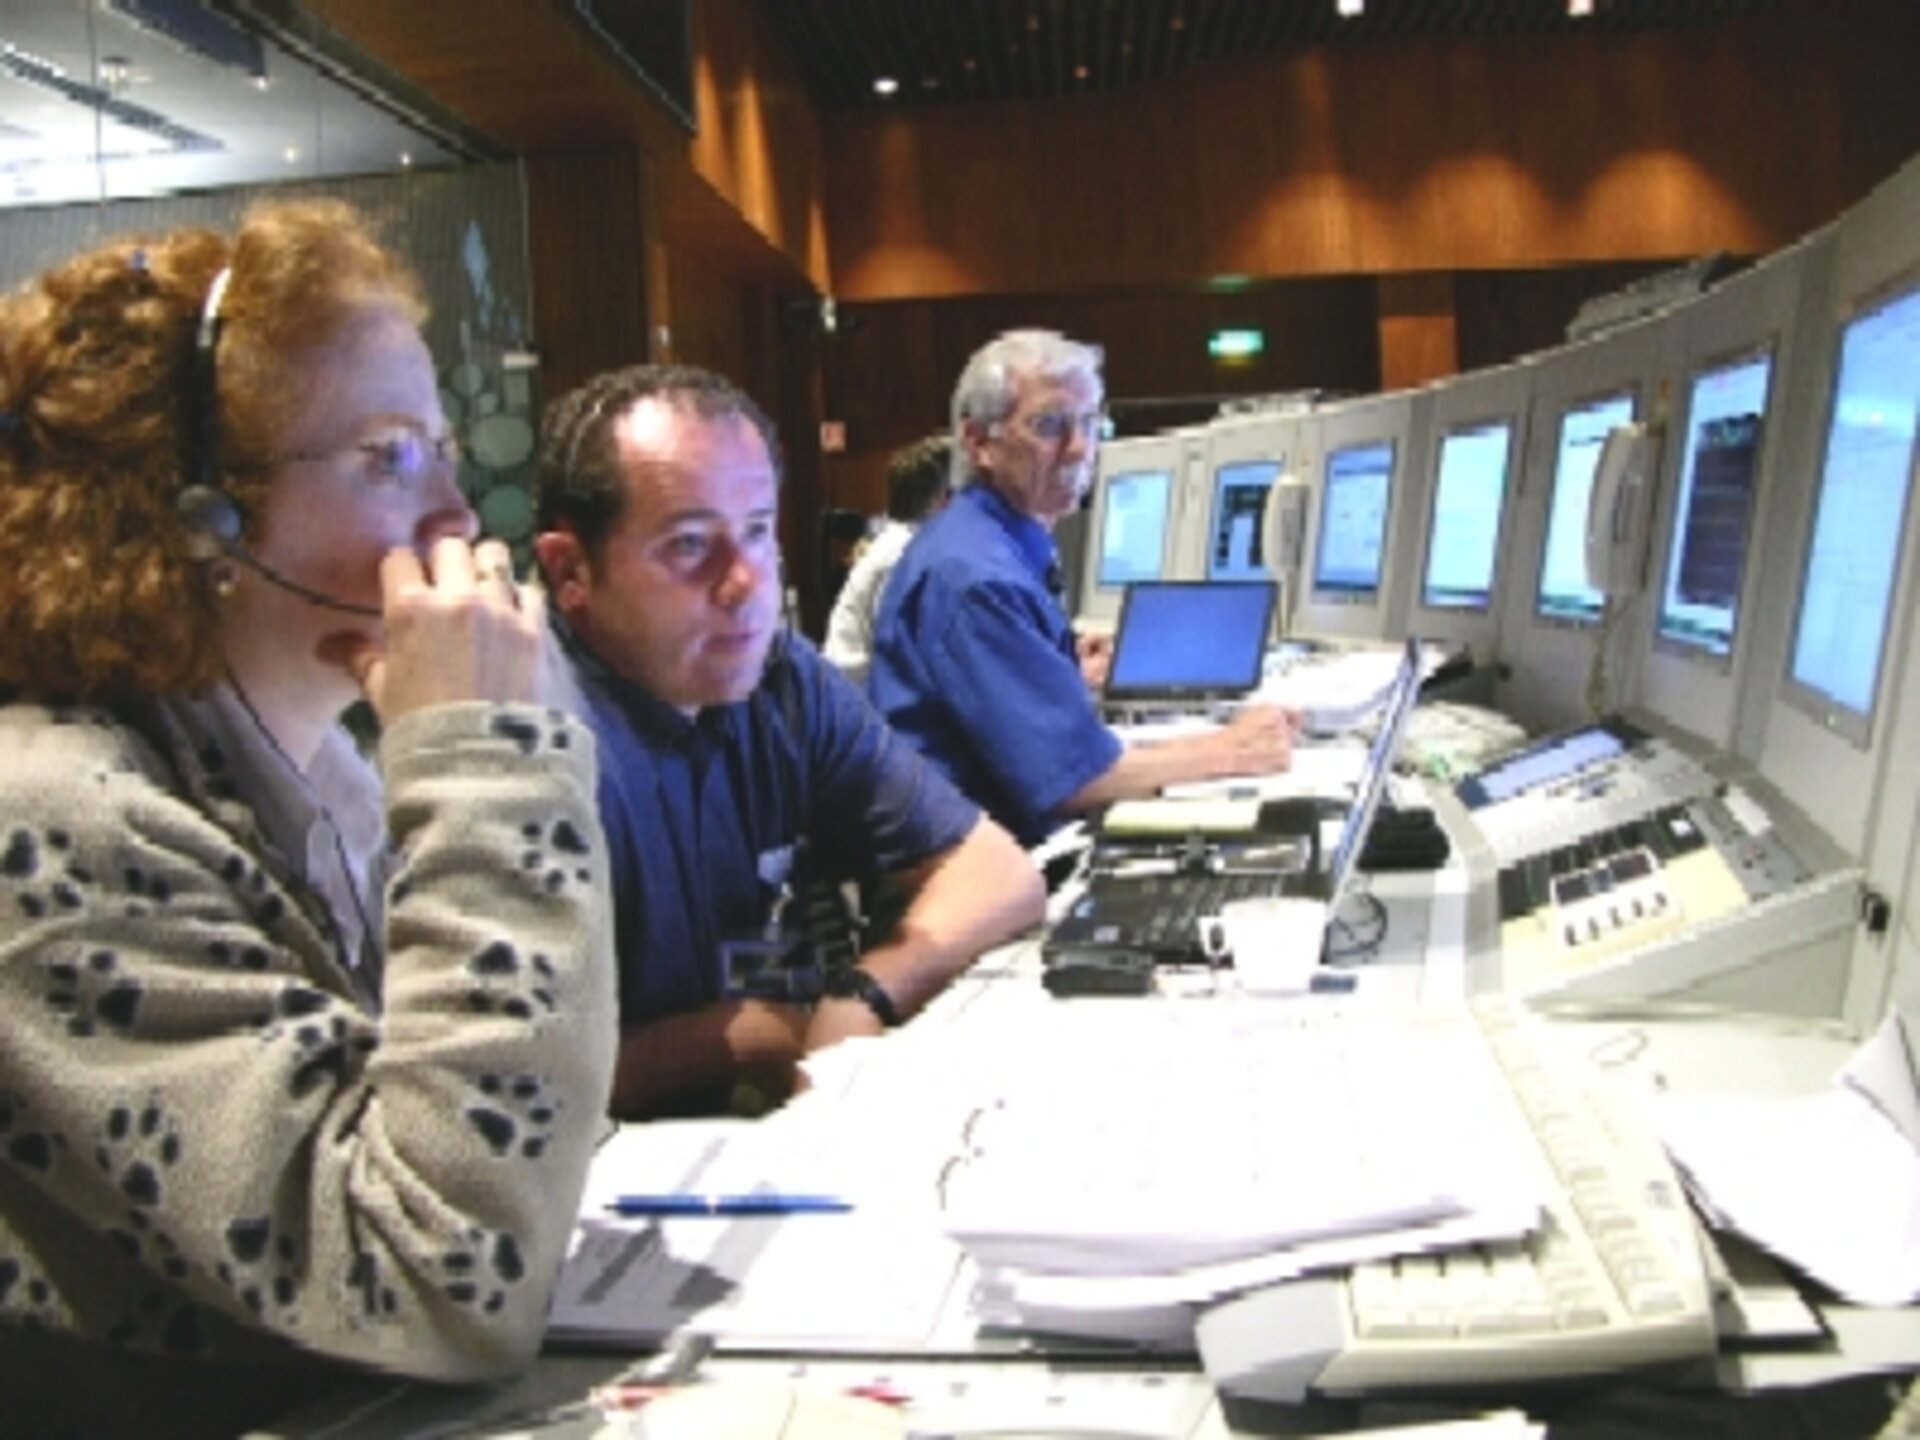 MSG-2 controllers in simulation for LEOP. Flight Director John Dodsworth is in blue shirt at right.